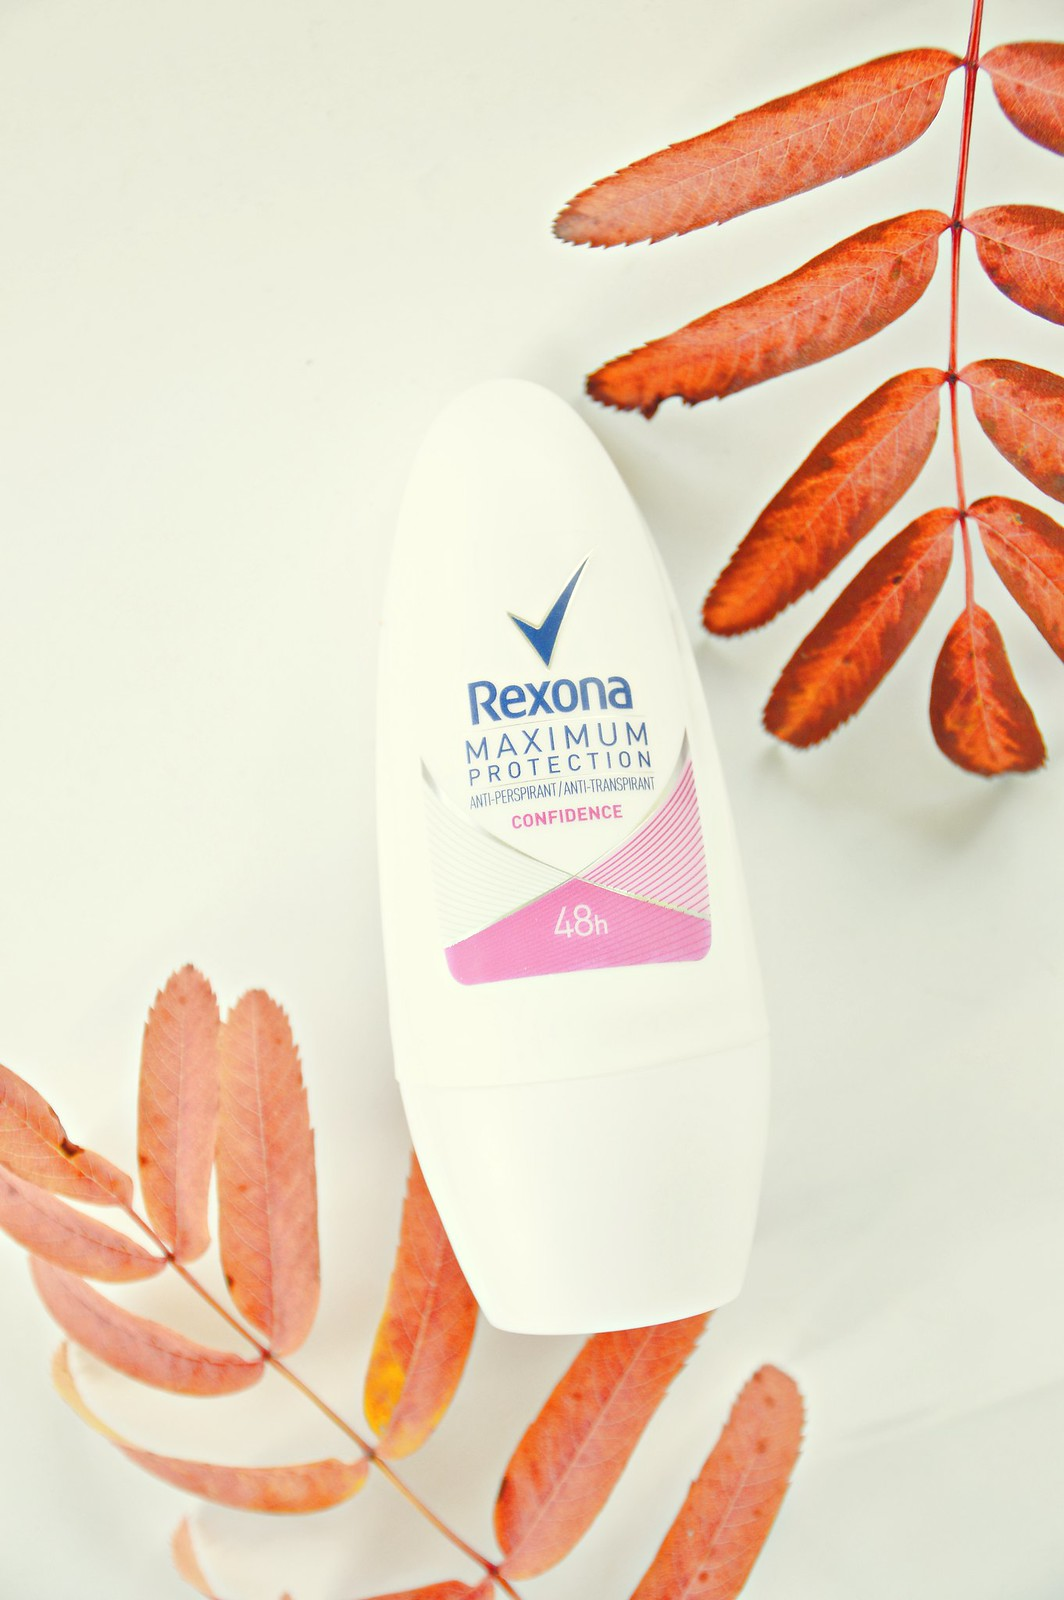 Rexona Maxium Protection antiperspirant, Bette Box